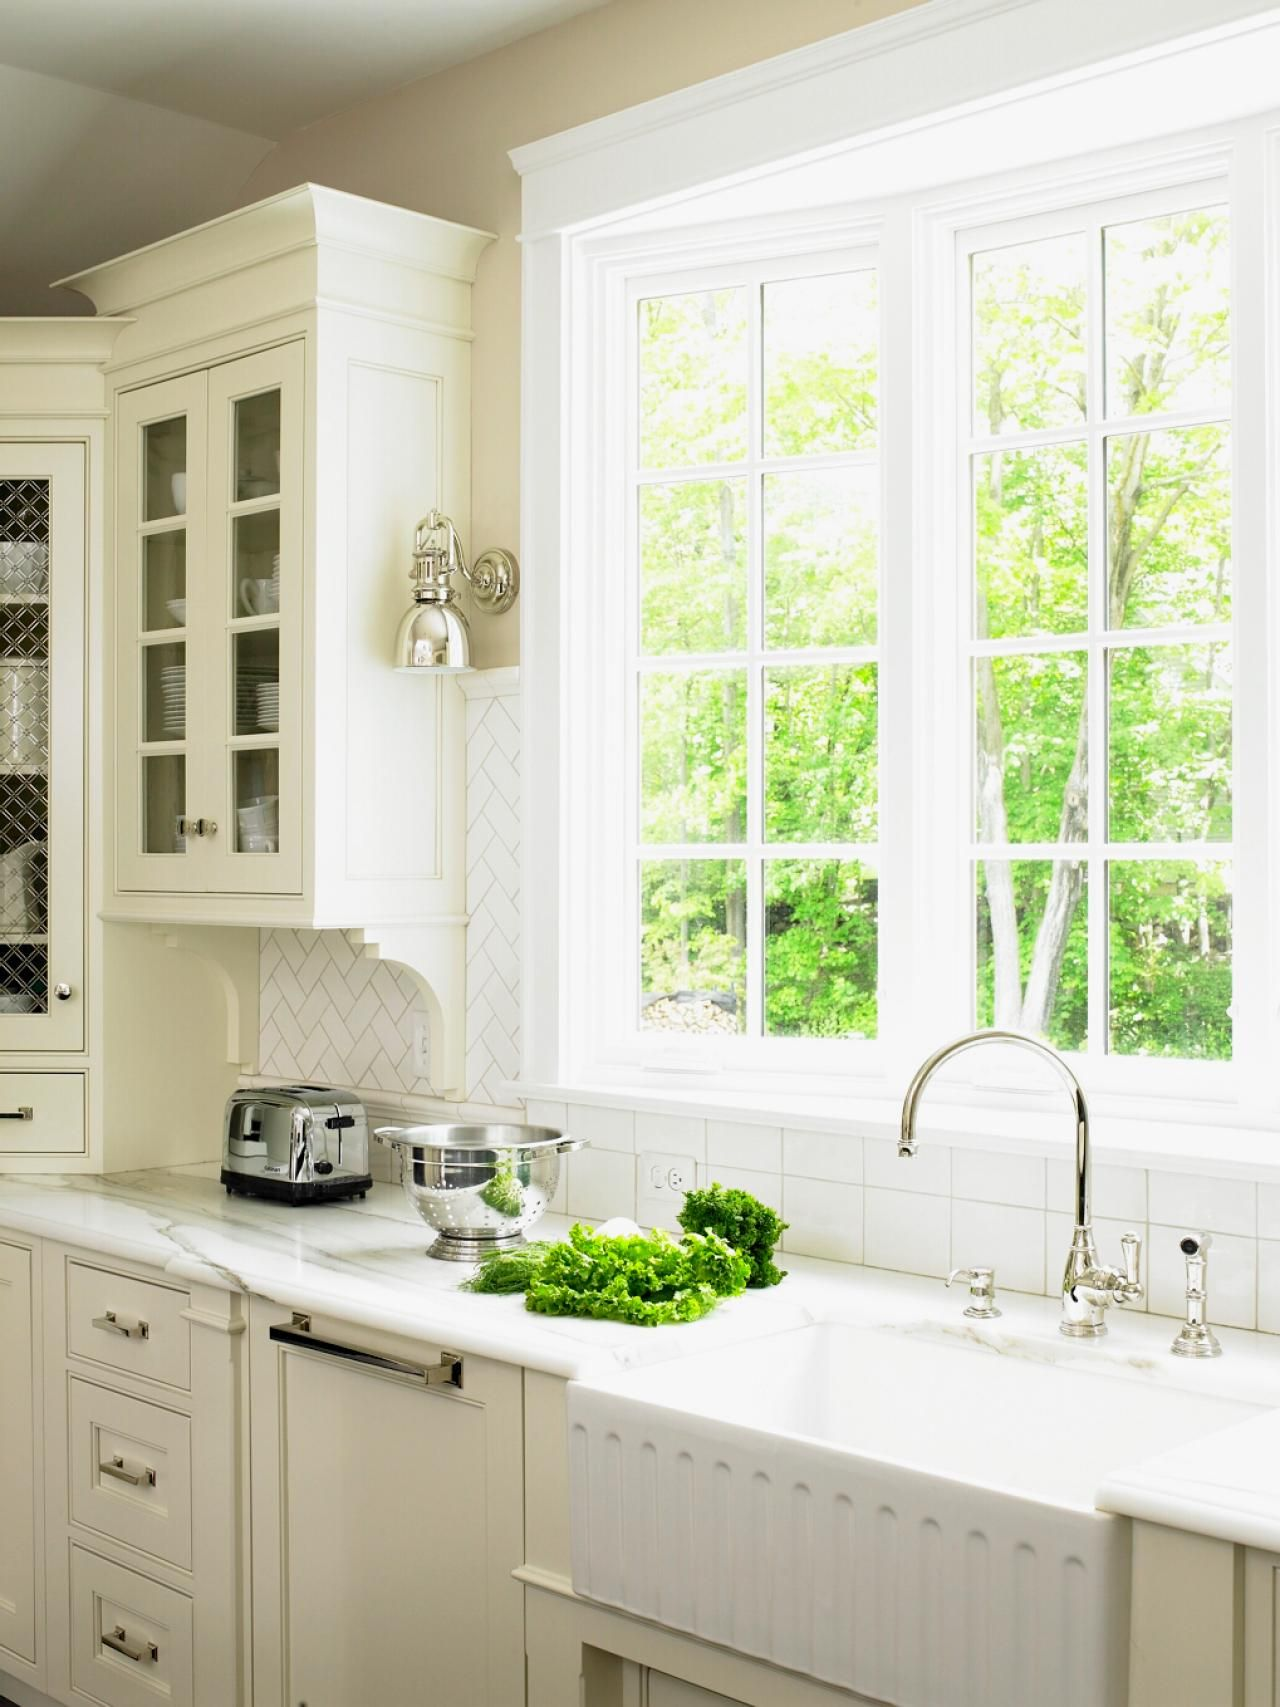 Kitchen Window Pictures: The Best Options, Styles & Ideas | Home ...